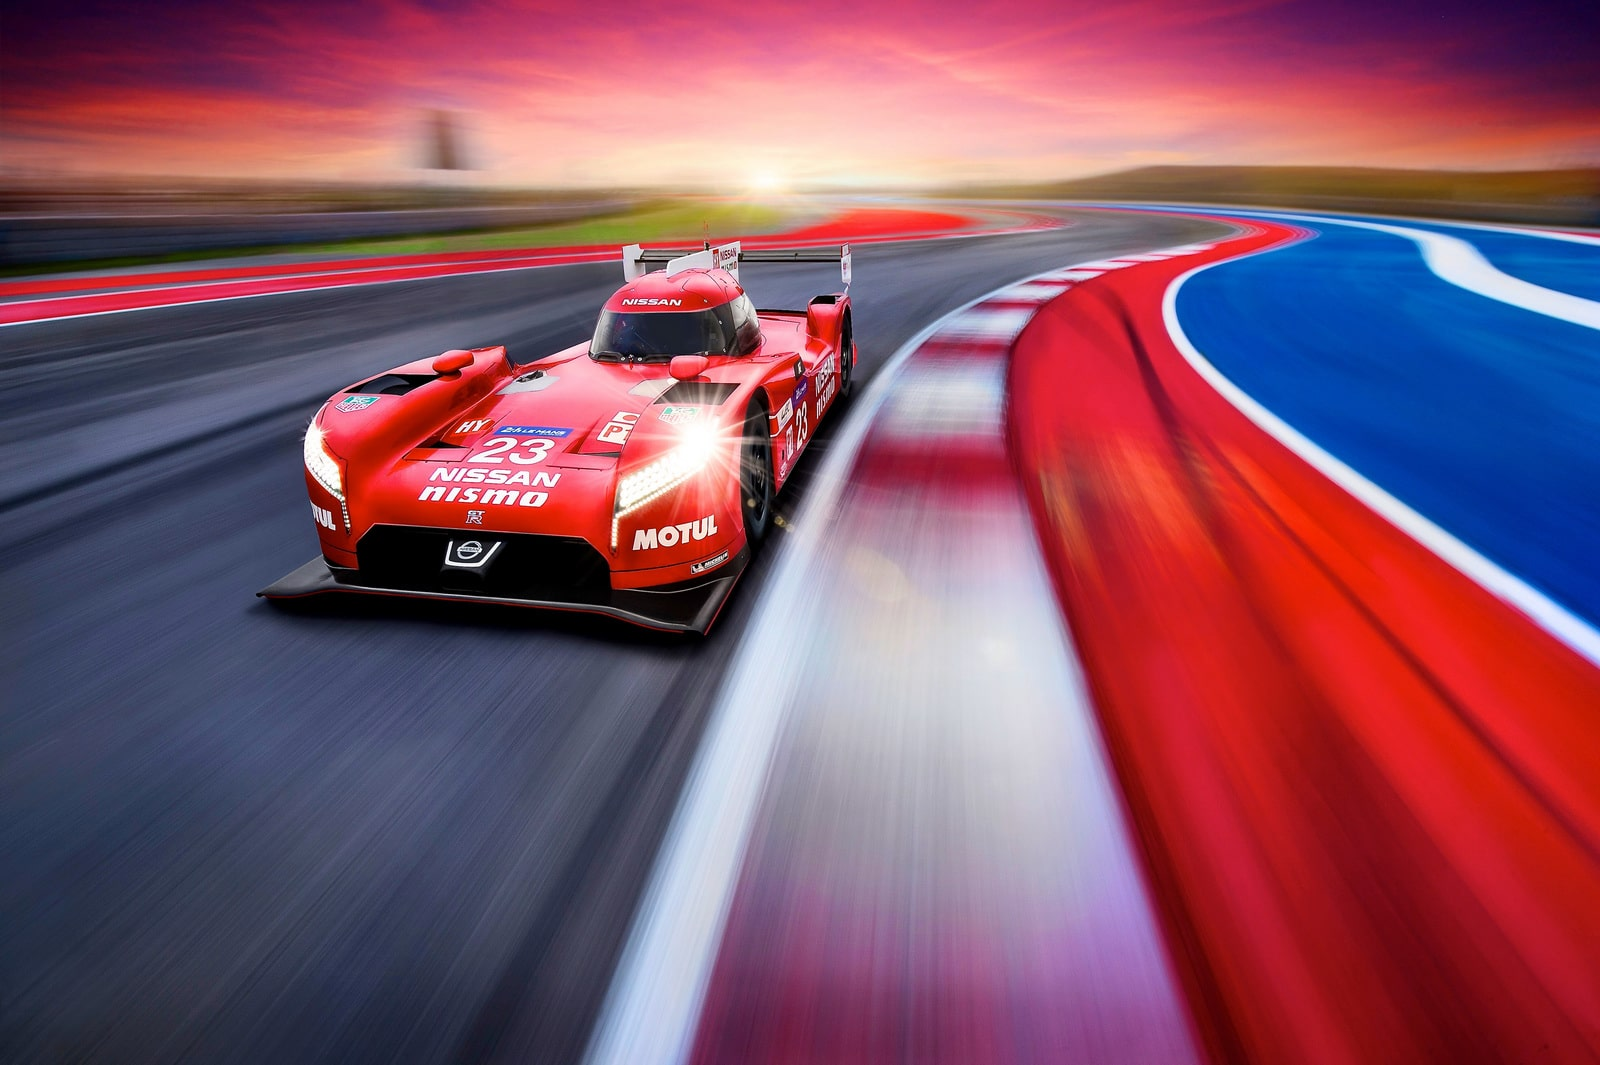 Nissan GT-R LM Nismo : Nissan is back